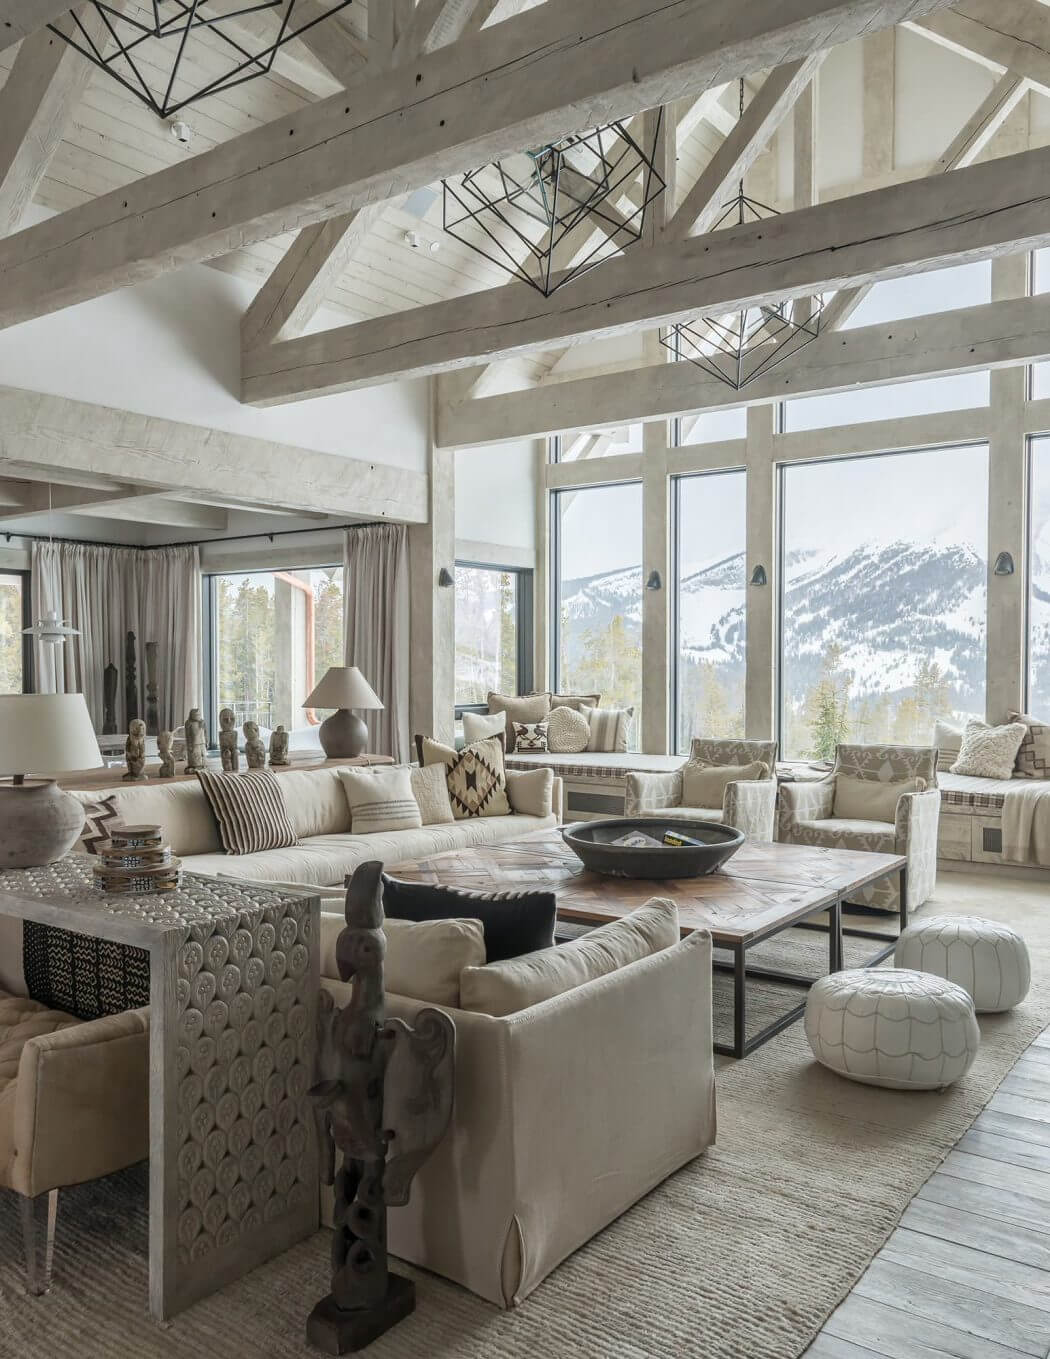 Rustic Zen By Locati Architects Architecture Interiors Inside Ideas Interiors design about Everything [magnanprojects.com]